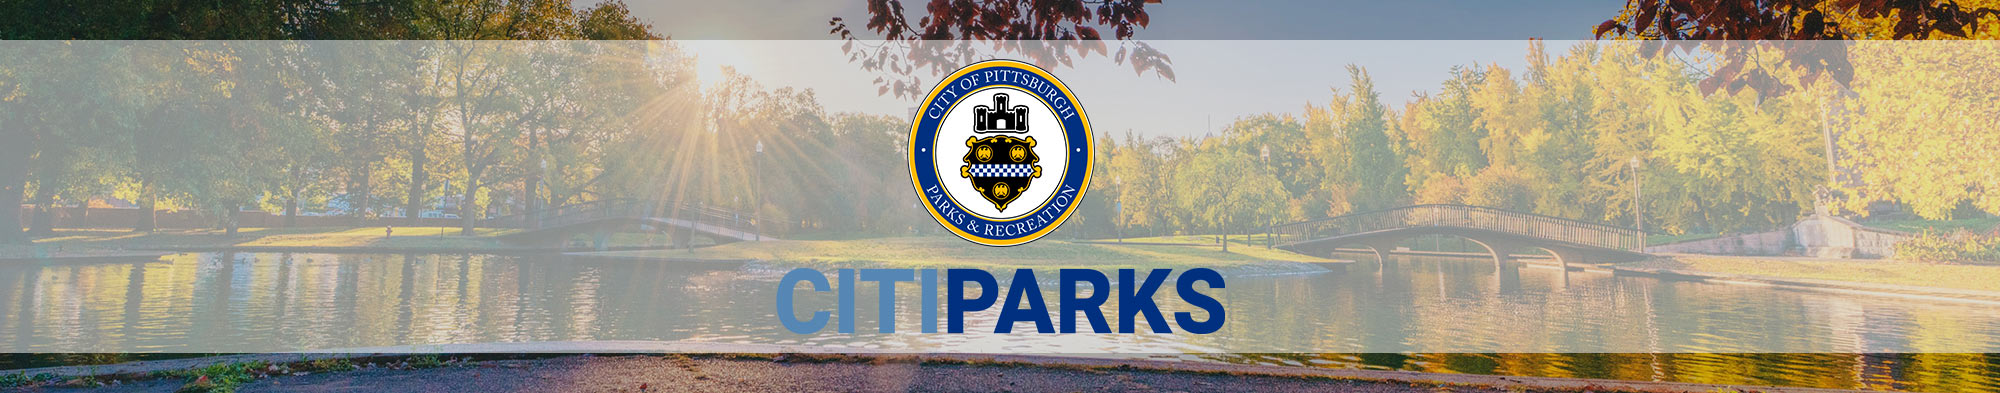 Allegheny Commons Park with Citiparks Seal and logo overlaid on top.